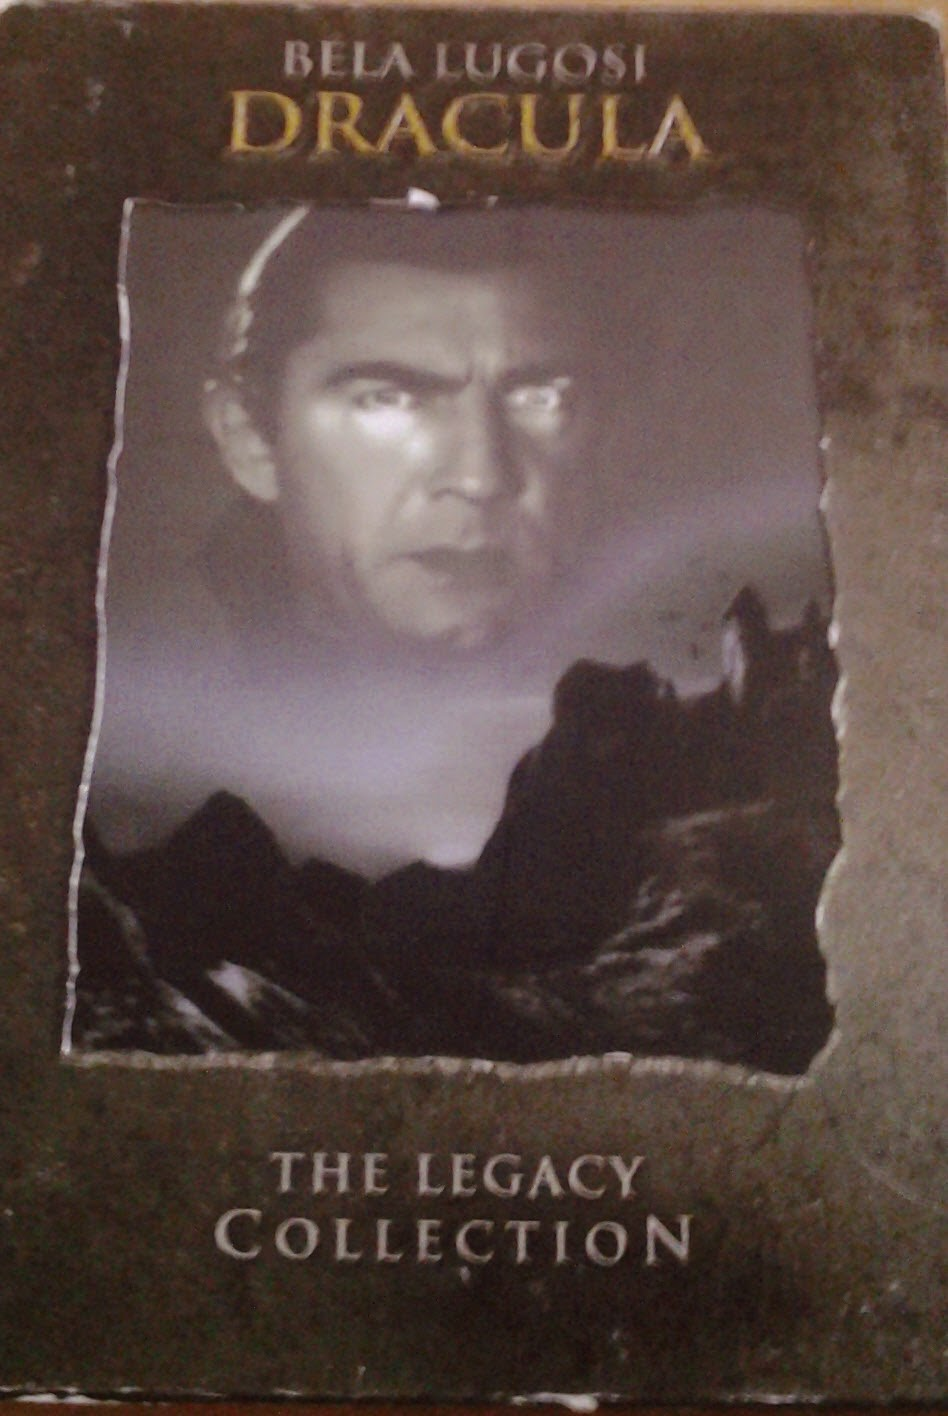 DVD Cover - Dracula 1931